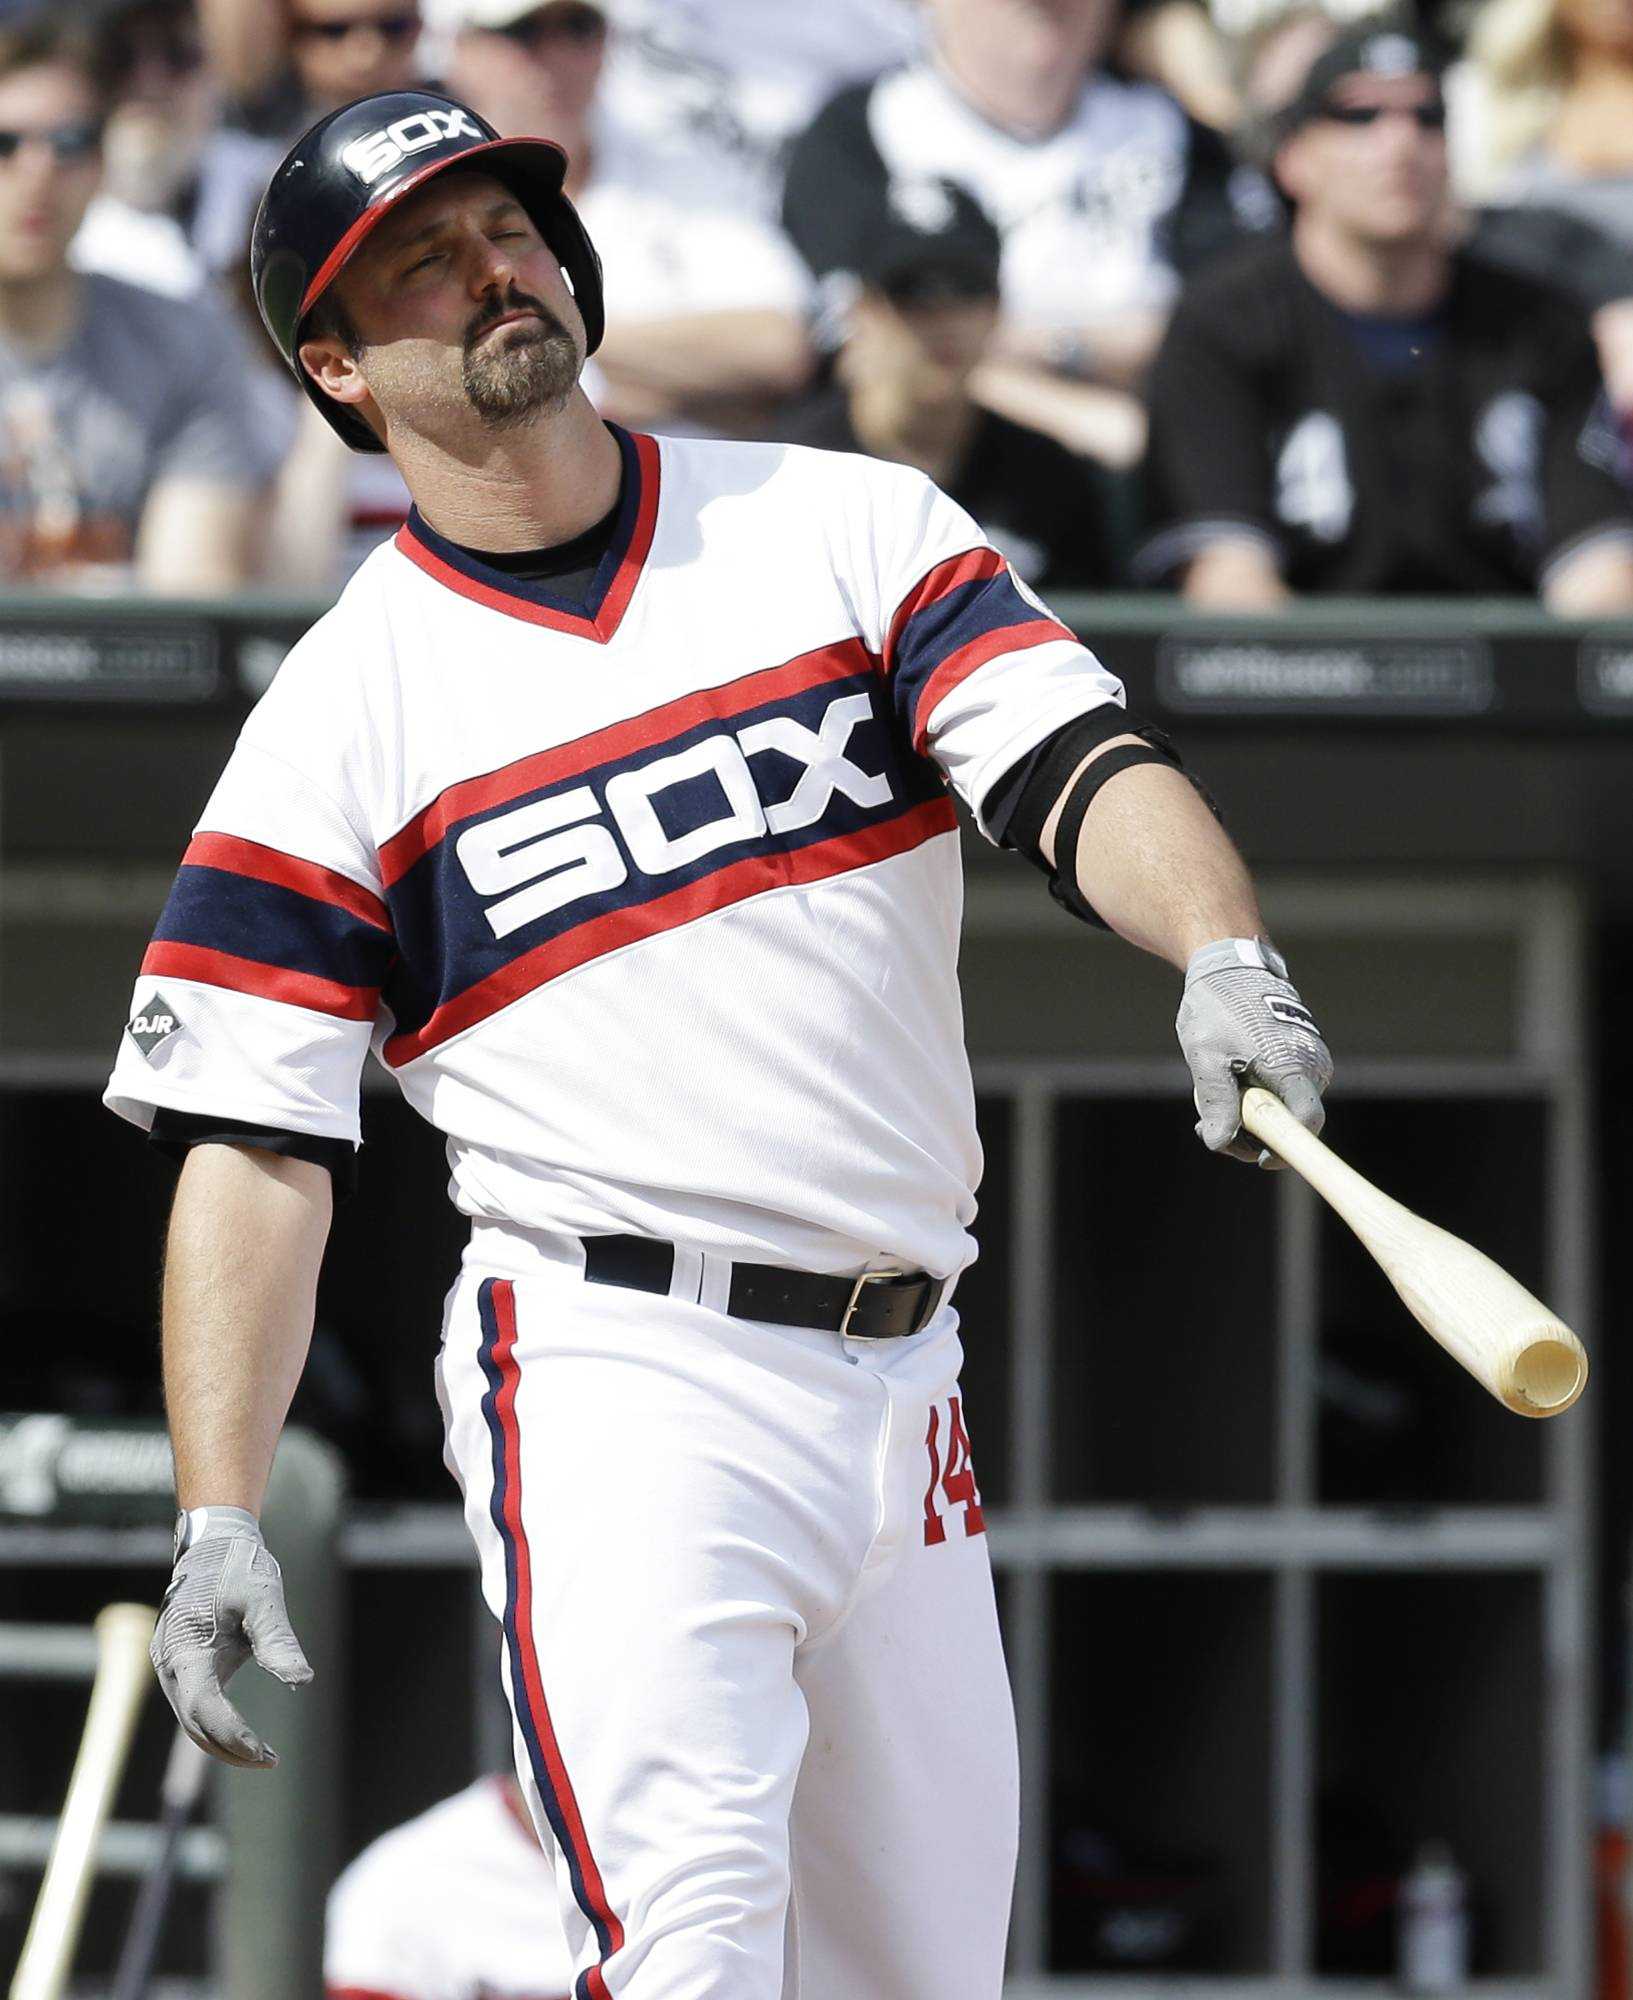 White Sox's Paul Konerko reacts after being called out on strikes during the ninth inning of a baseball game against the New York Yankees in Chicago on Saturday, May 24, 2014. The Yankees won 4-3.